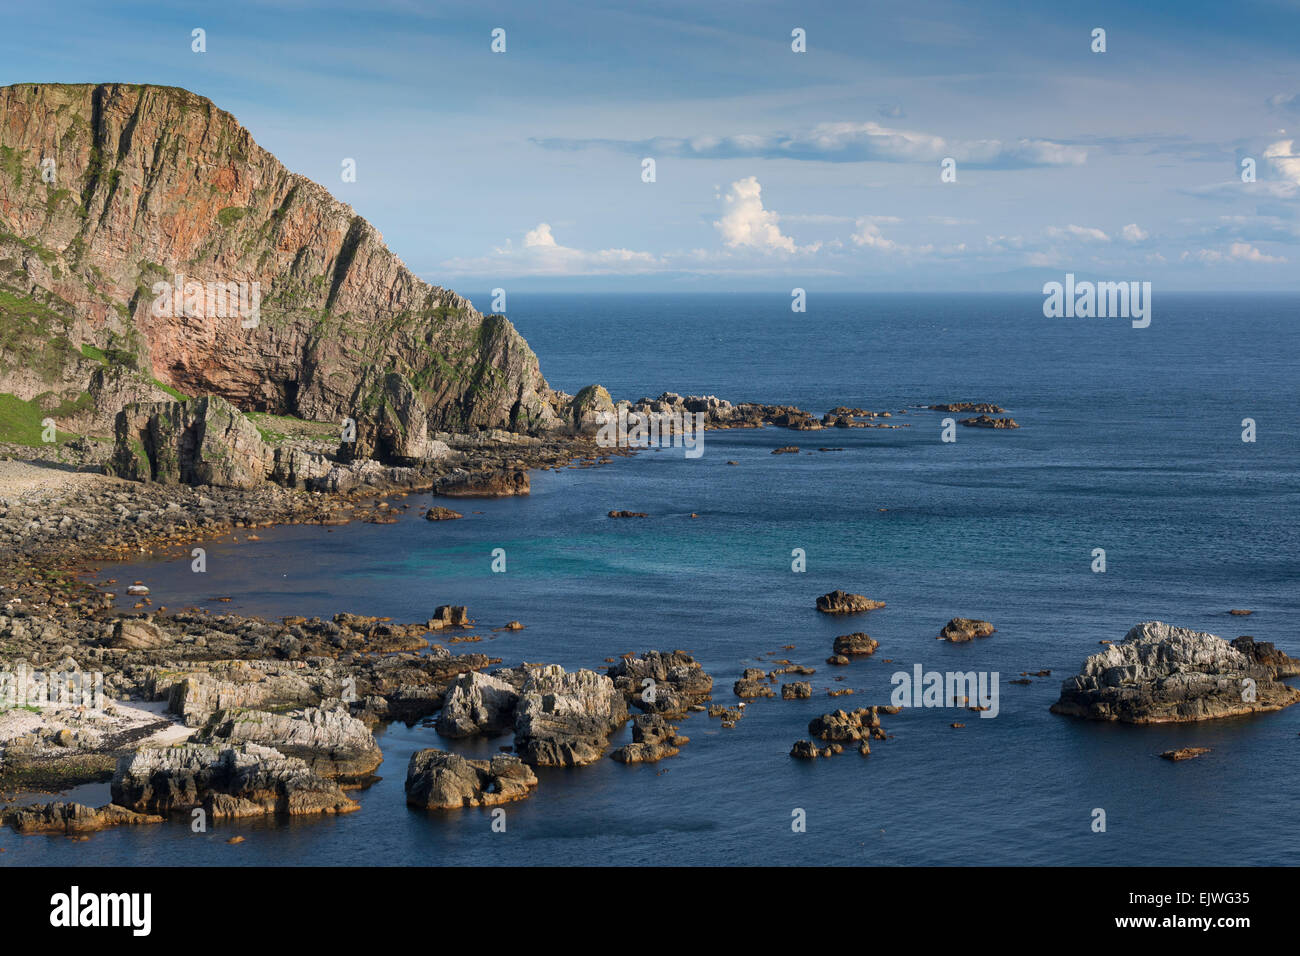 mull of oa cliffs nature reserve - Stock Image